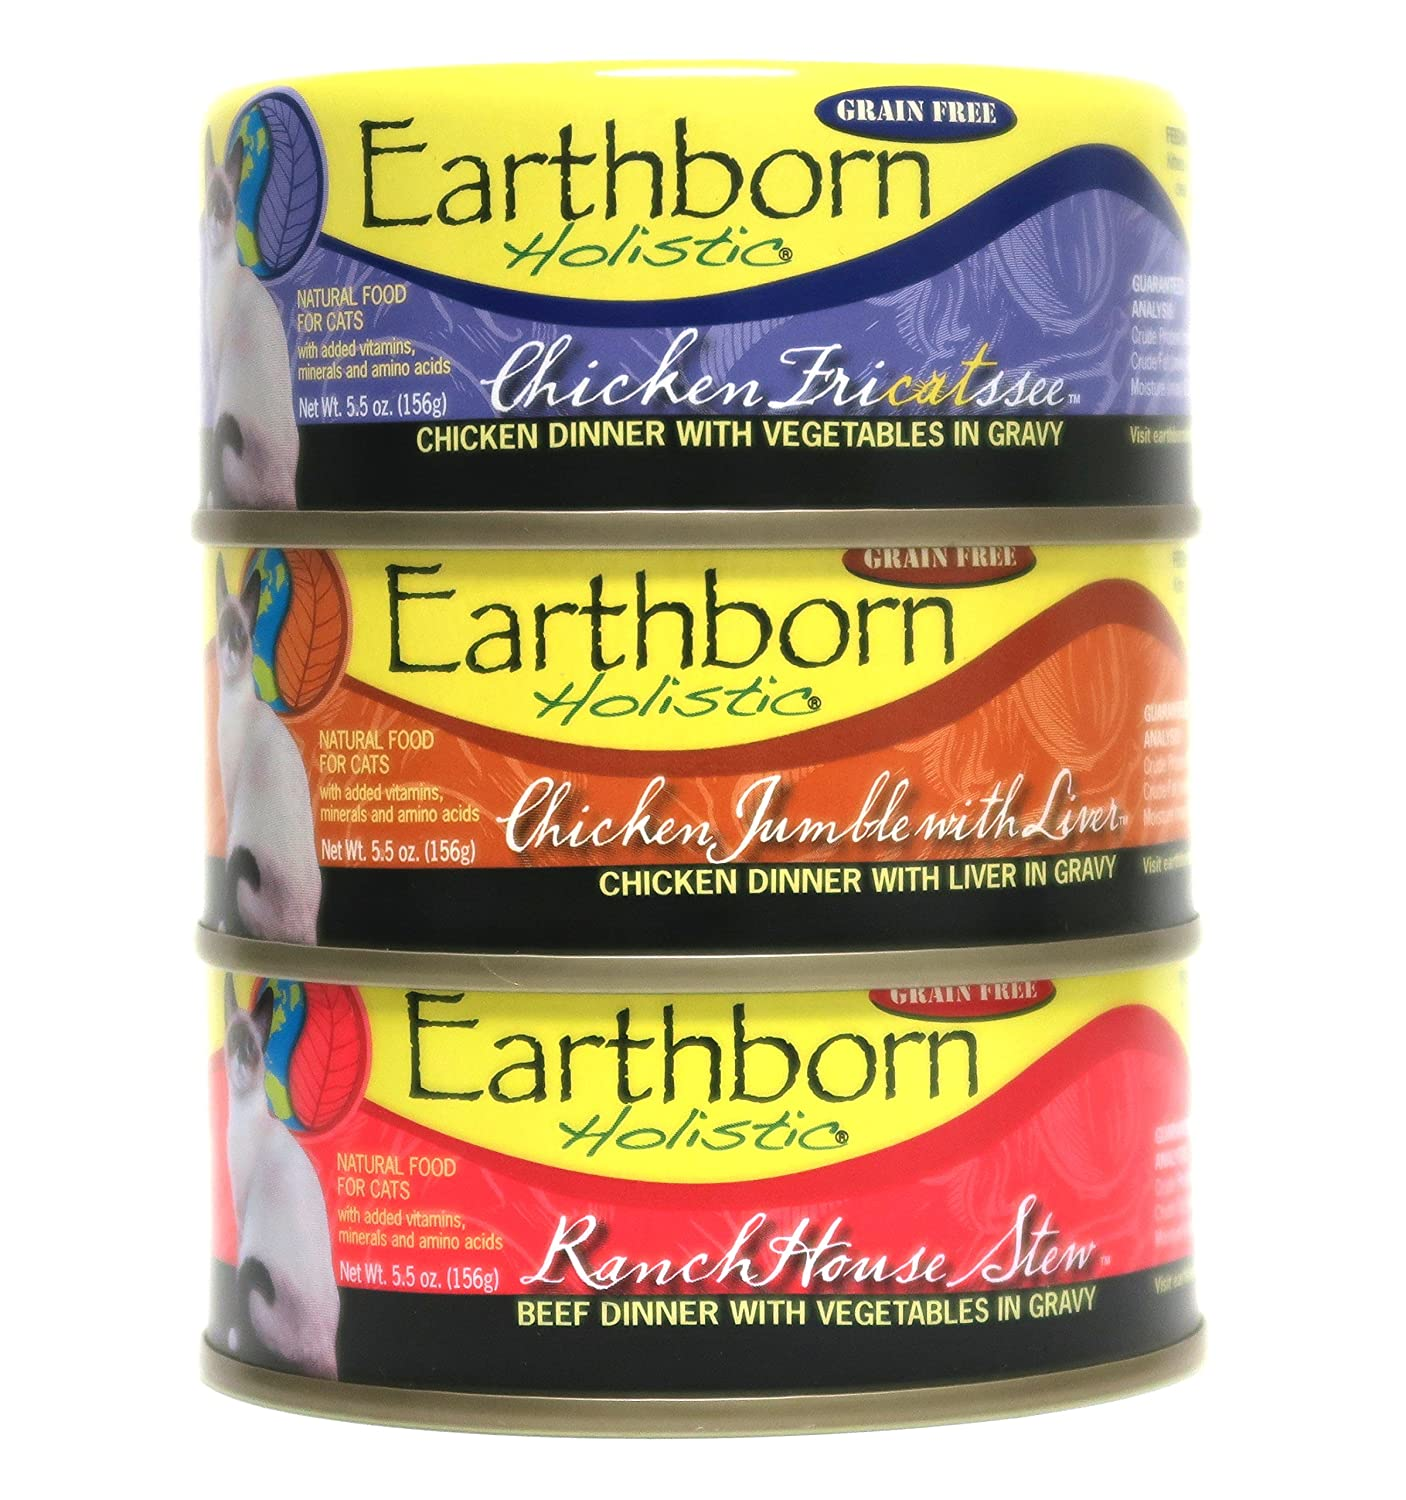 Earthborn Holistic Wet Cat Food Variety Pack - 3 Flavors (Chicken Jumble with Liver, RanchHouse Stew, and Chicken Fricatssee) - 5.5 Ounces Each (12 Total Cans)